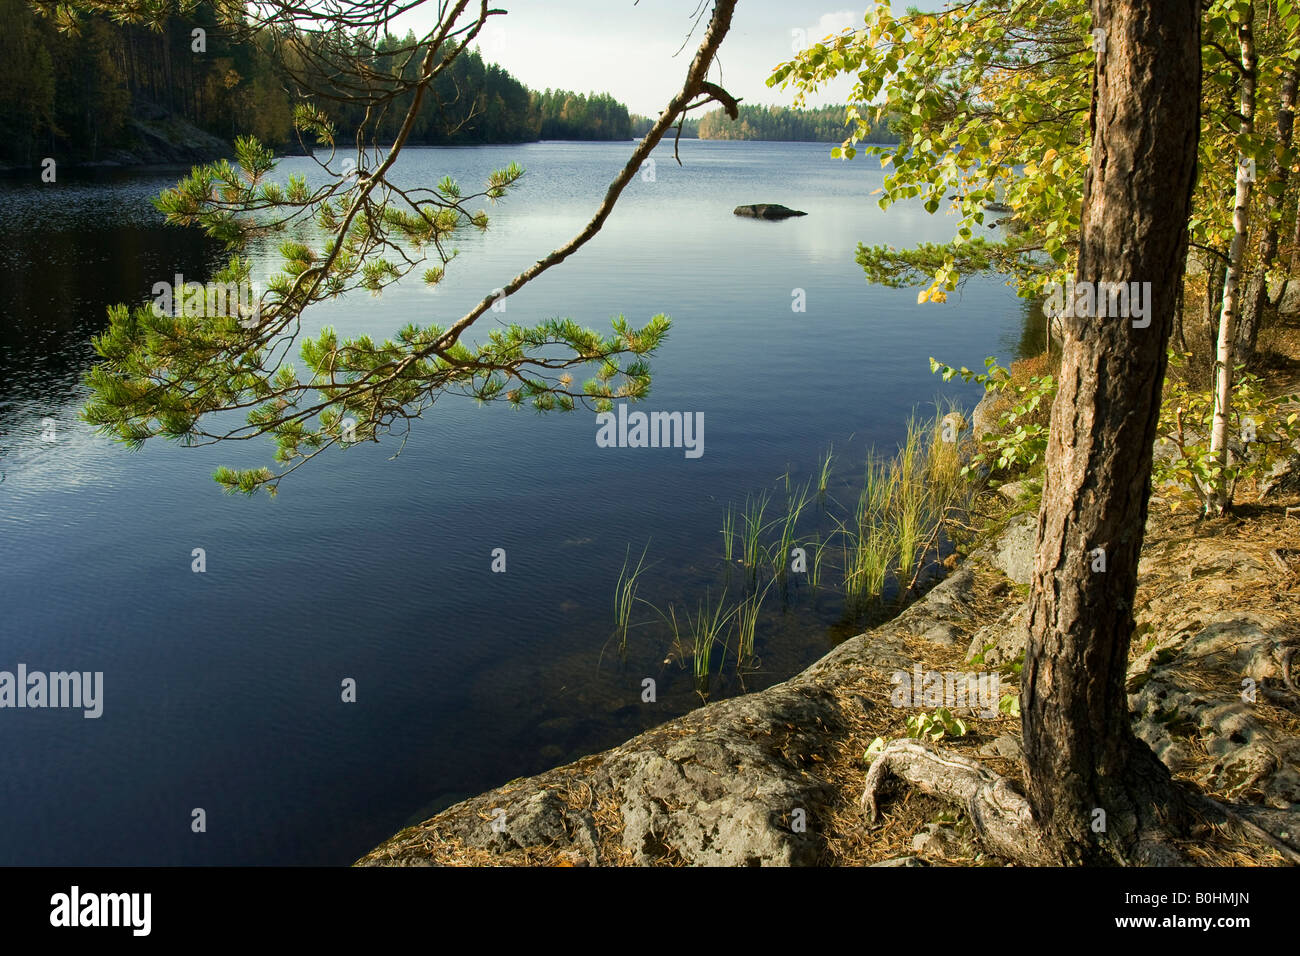 Lake surrounded by pine forest, Isojaervi National Park, Finland, Scandinavia - Stock Image